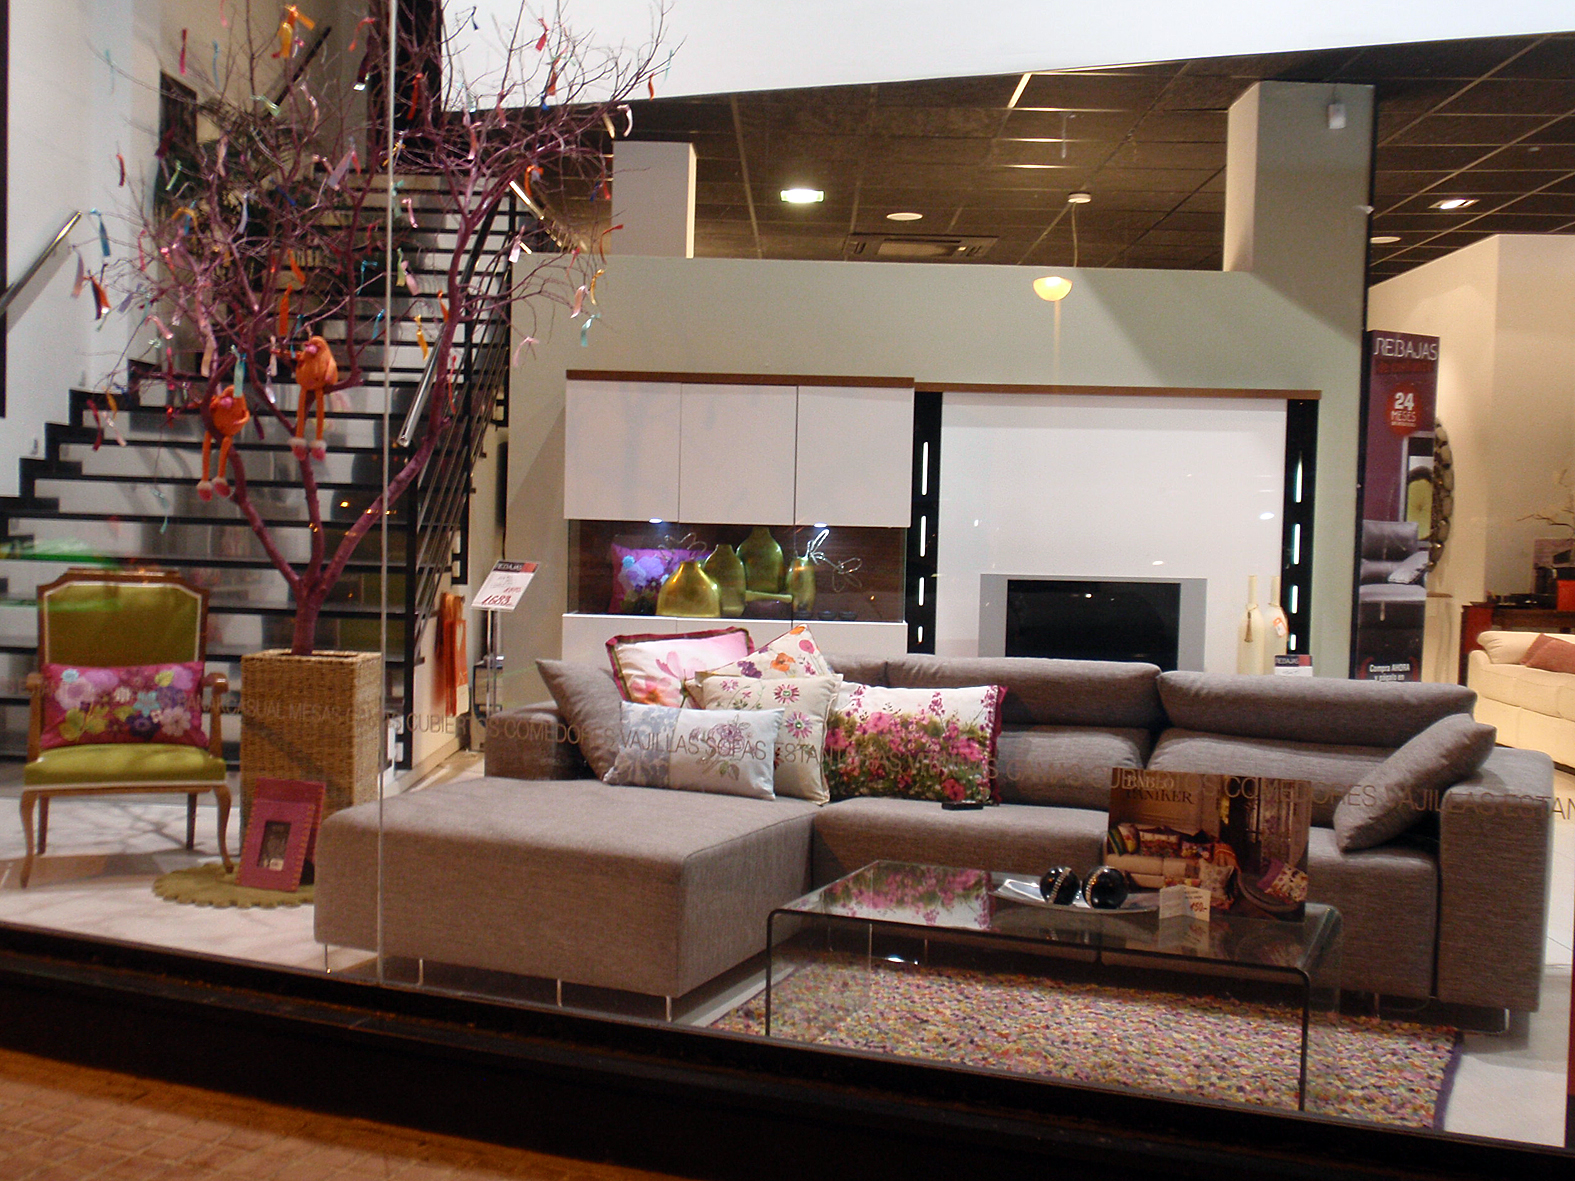 Muebles Escaparate Escaparates Y Showroom De Kiona